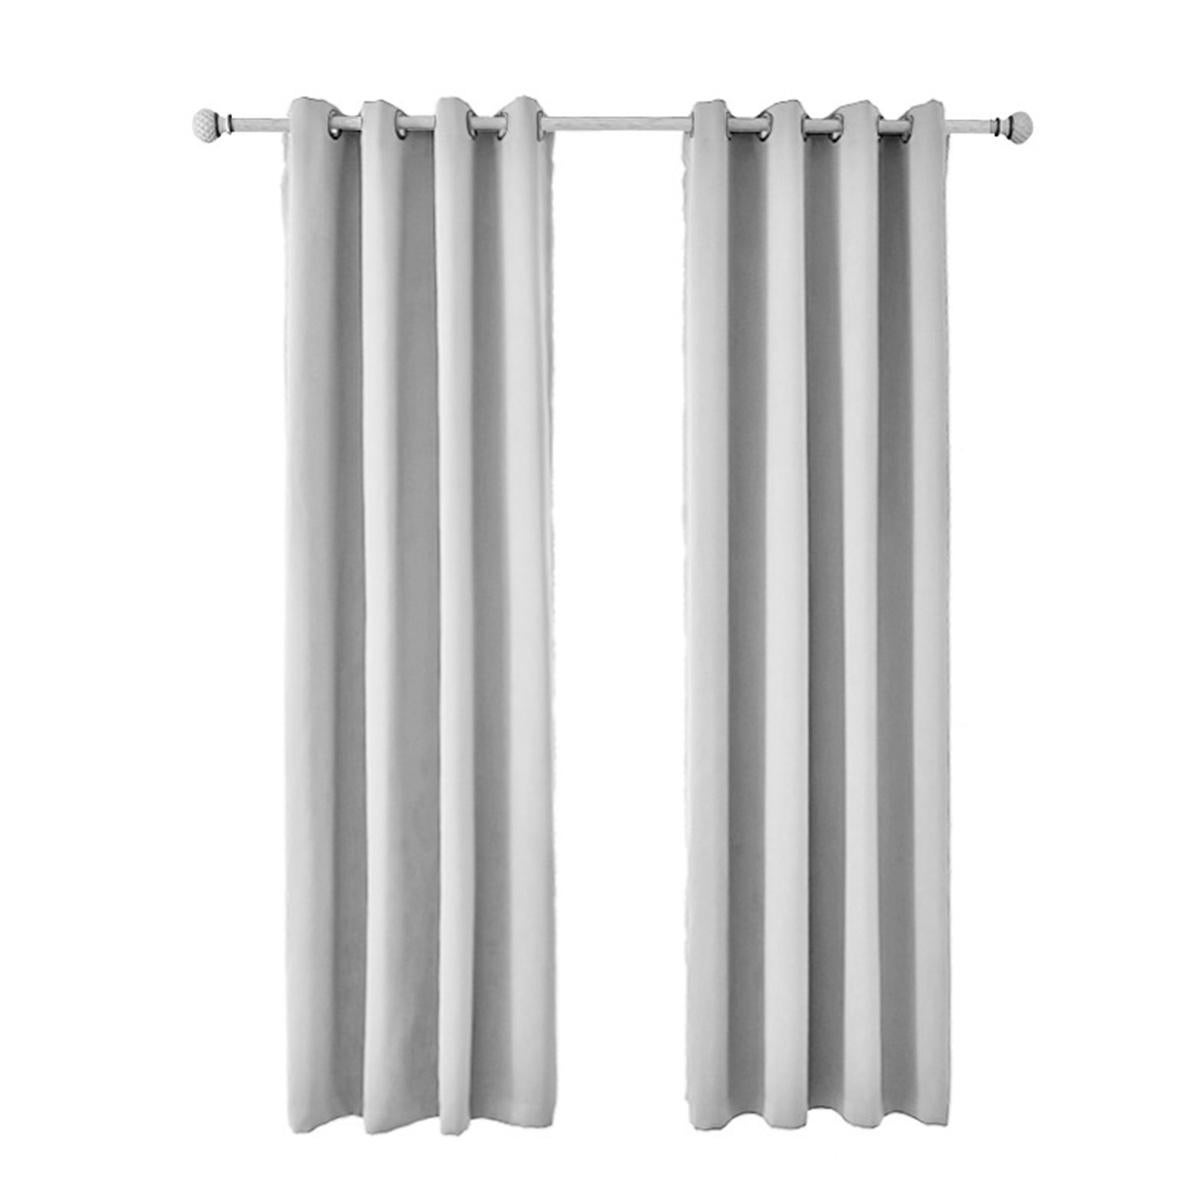 outdoor blackout curtains patio uv protection waterproof curtains shower curtain not including rod lightgrey 132x213 inchs